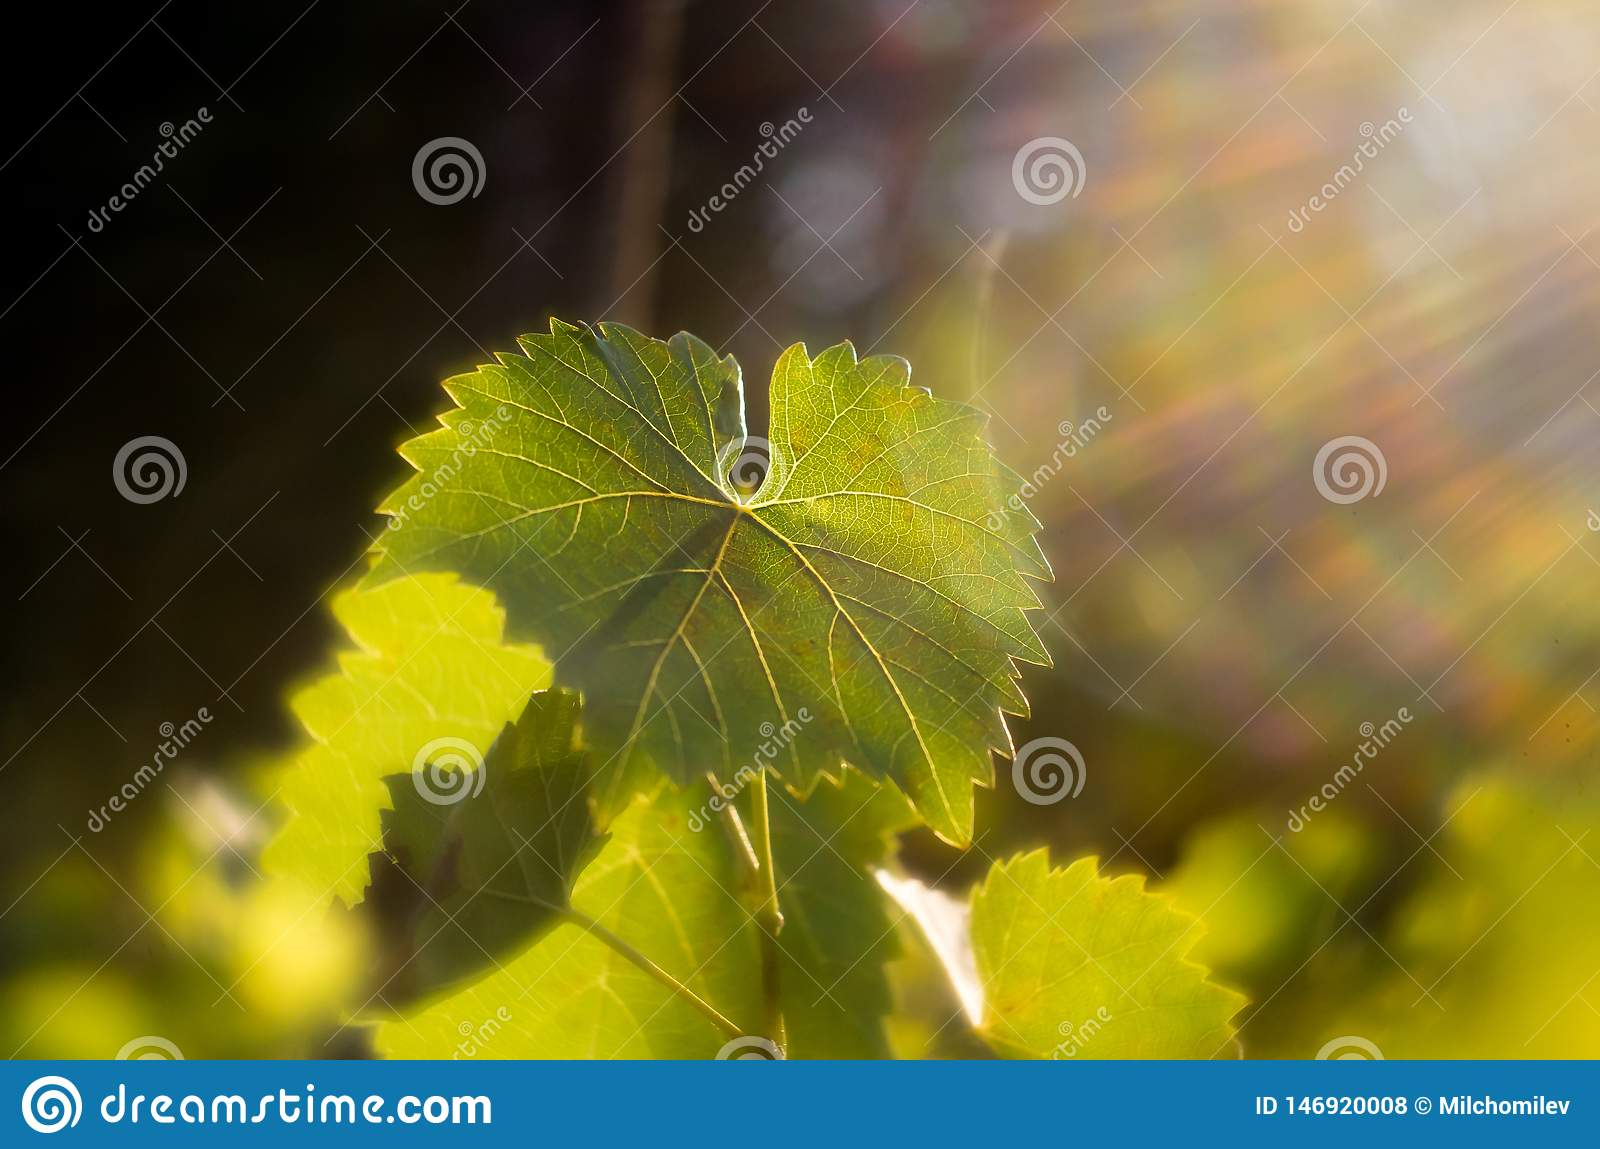 Vine leaves in autumn. Vine leaves lit by the setting sun. Green leaves lit by soft sunlight. Wine vineyards shining from the sun